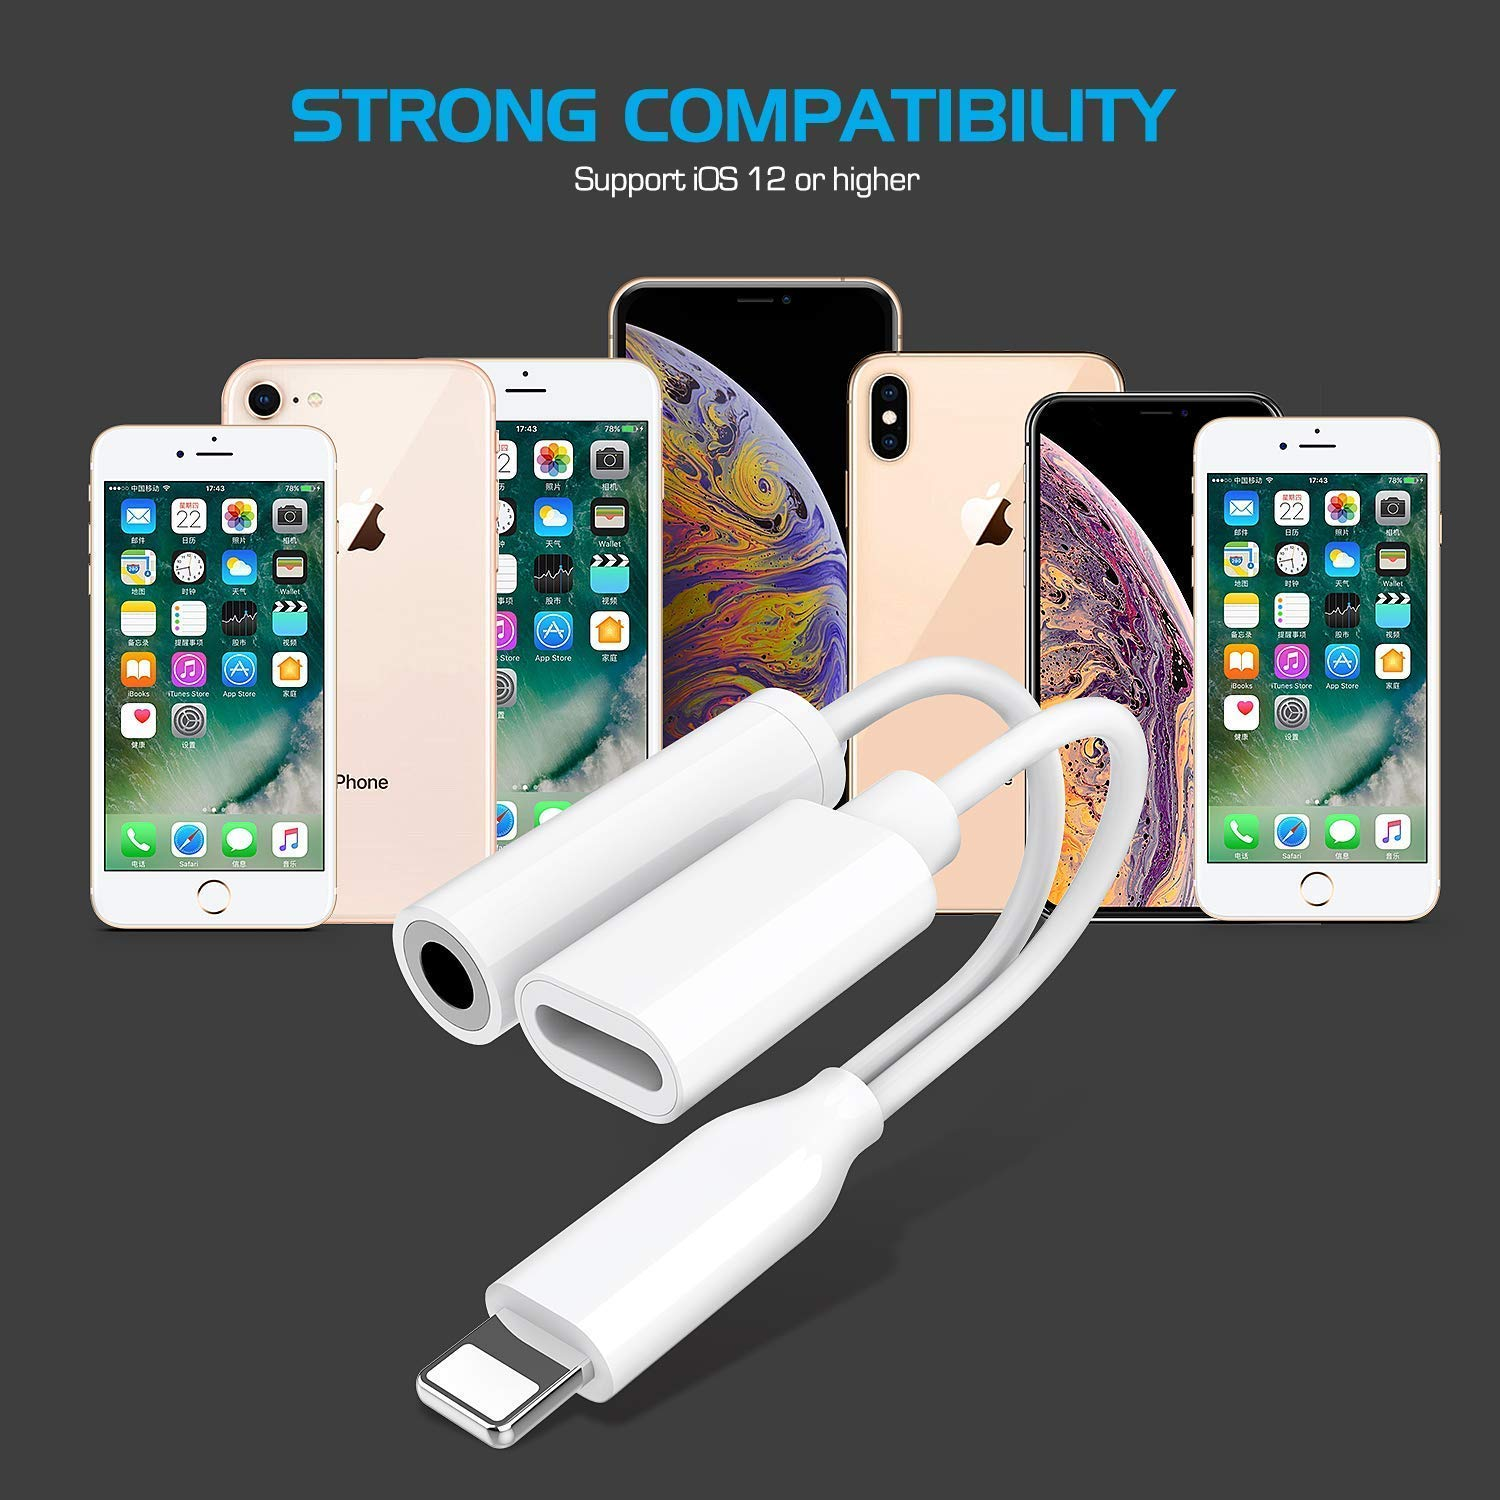 Headphone Adapter for iPhone X Earphone 3.5mm Jack AUX Cable Audio Adaptor Splitter for iPhone 8//8Plus//7//7Plus//X//XS max Music /& Charge Dongle Headset Convertor Accessories Support All iOS-White